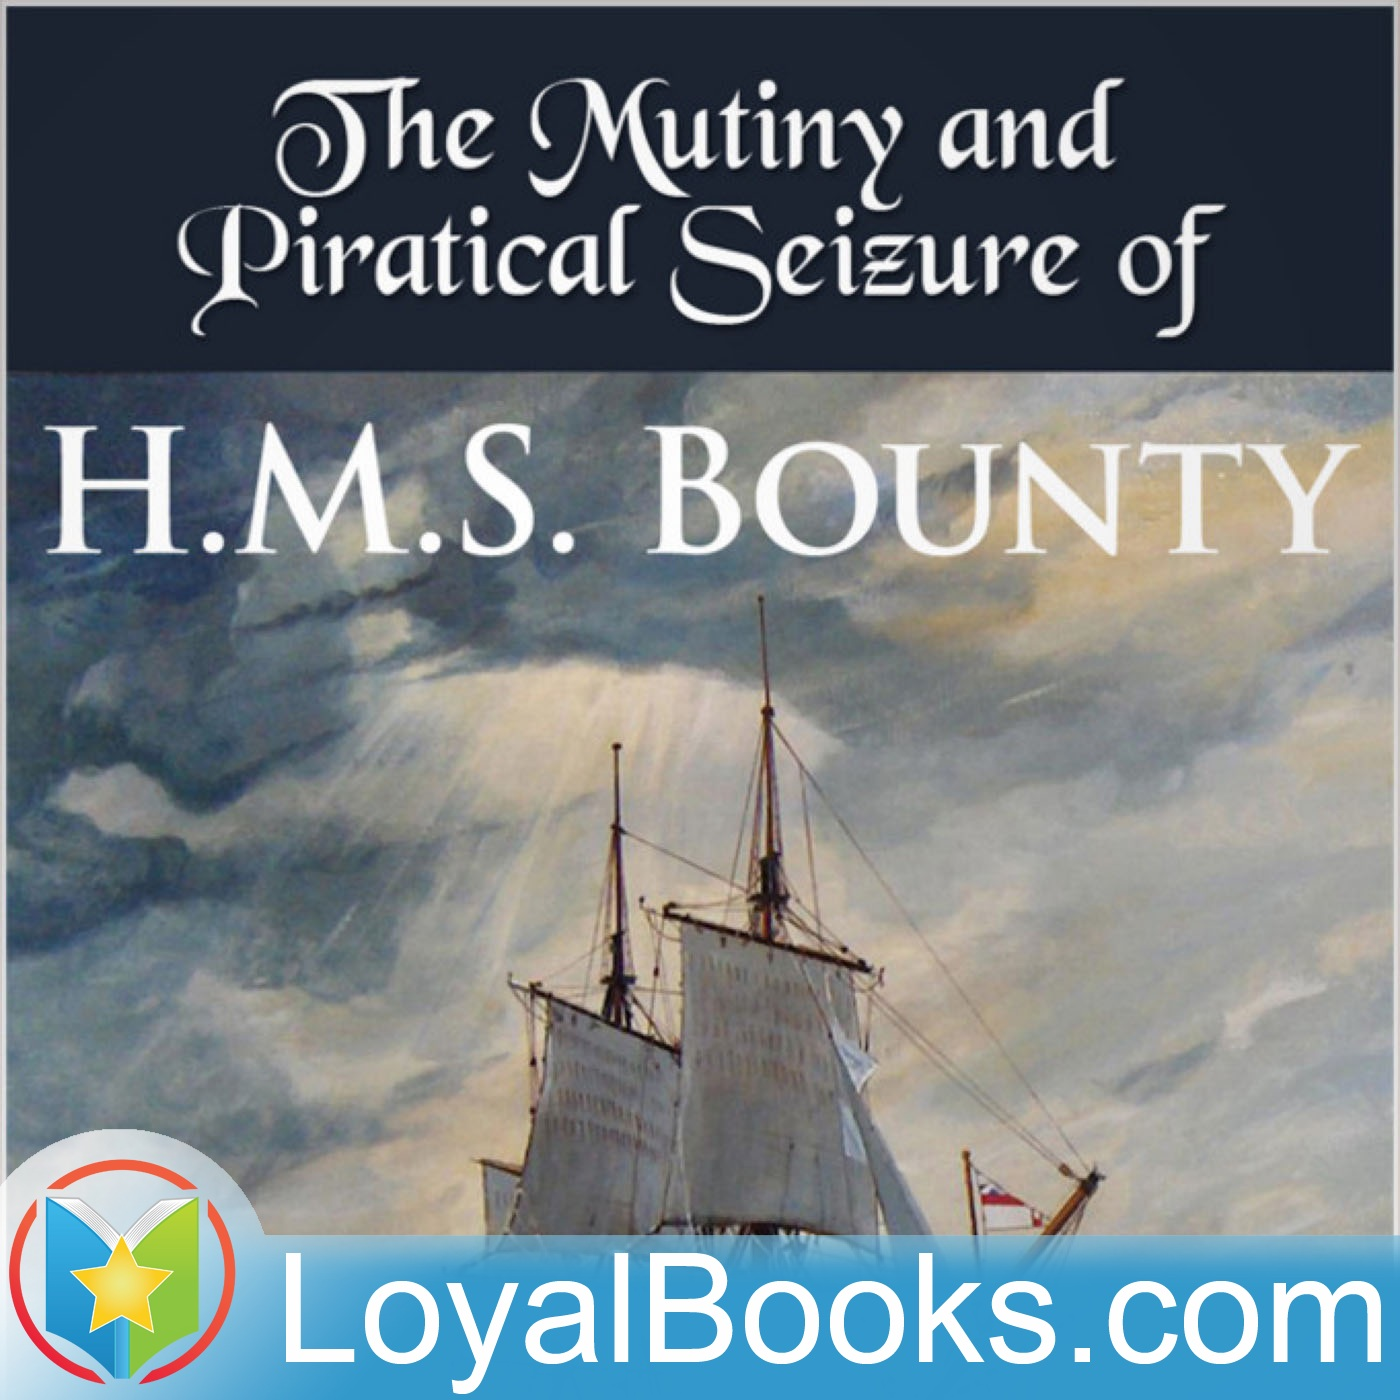 <![CDATA[Eventful History of the Mutiny and Piratical Seizure of H.M.S. Bounty by Sir John Barrow]]>